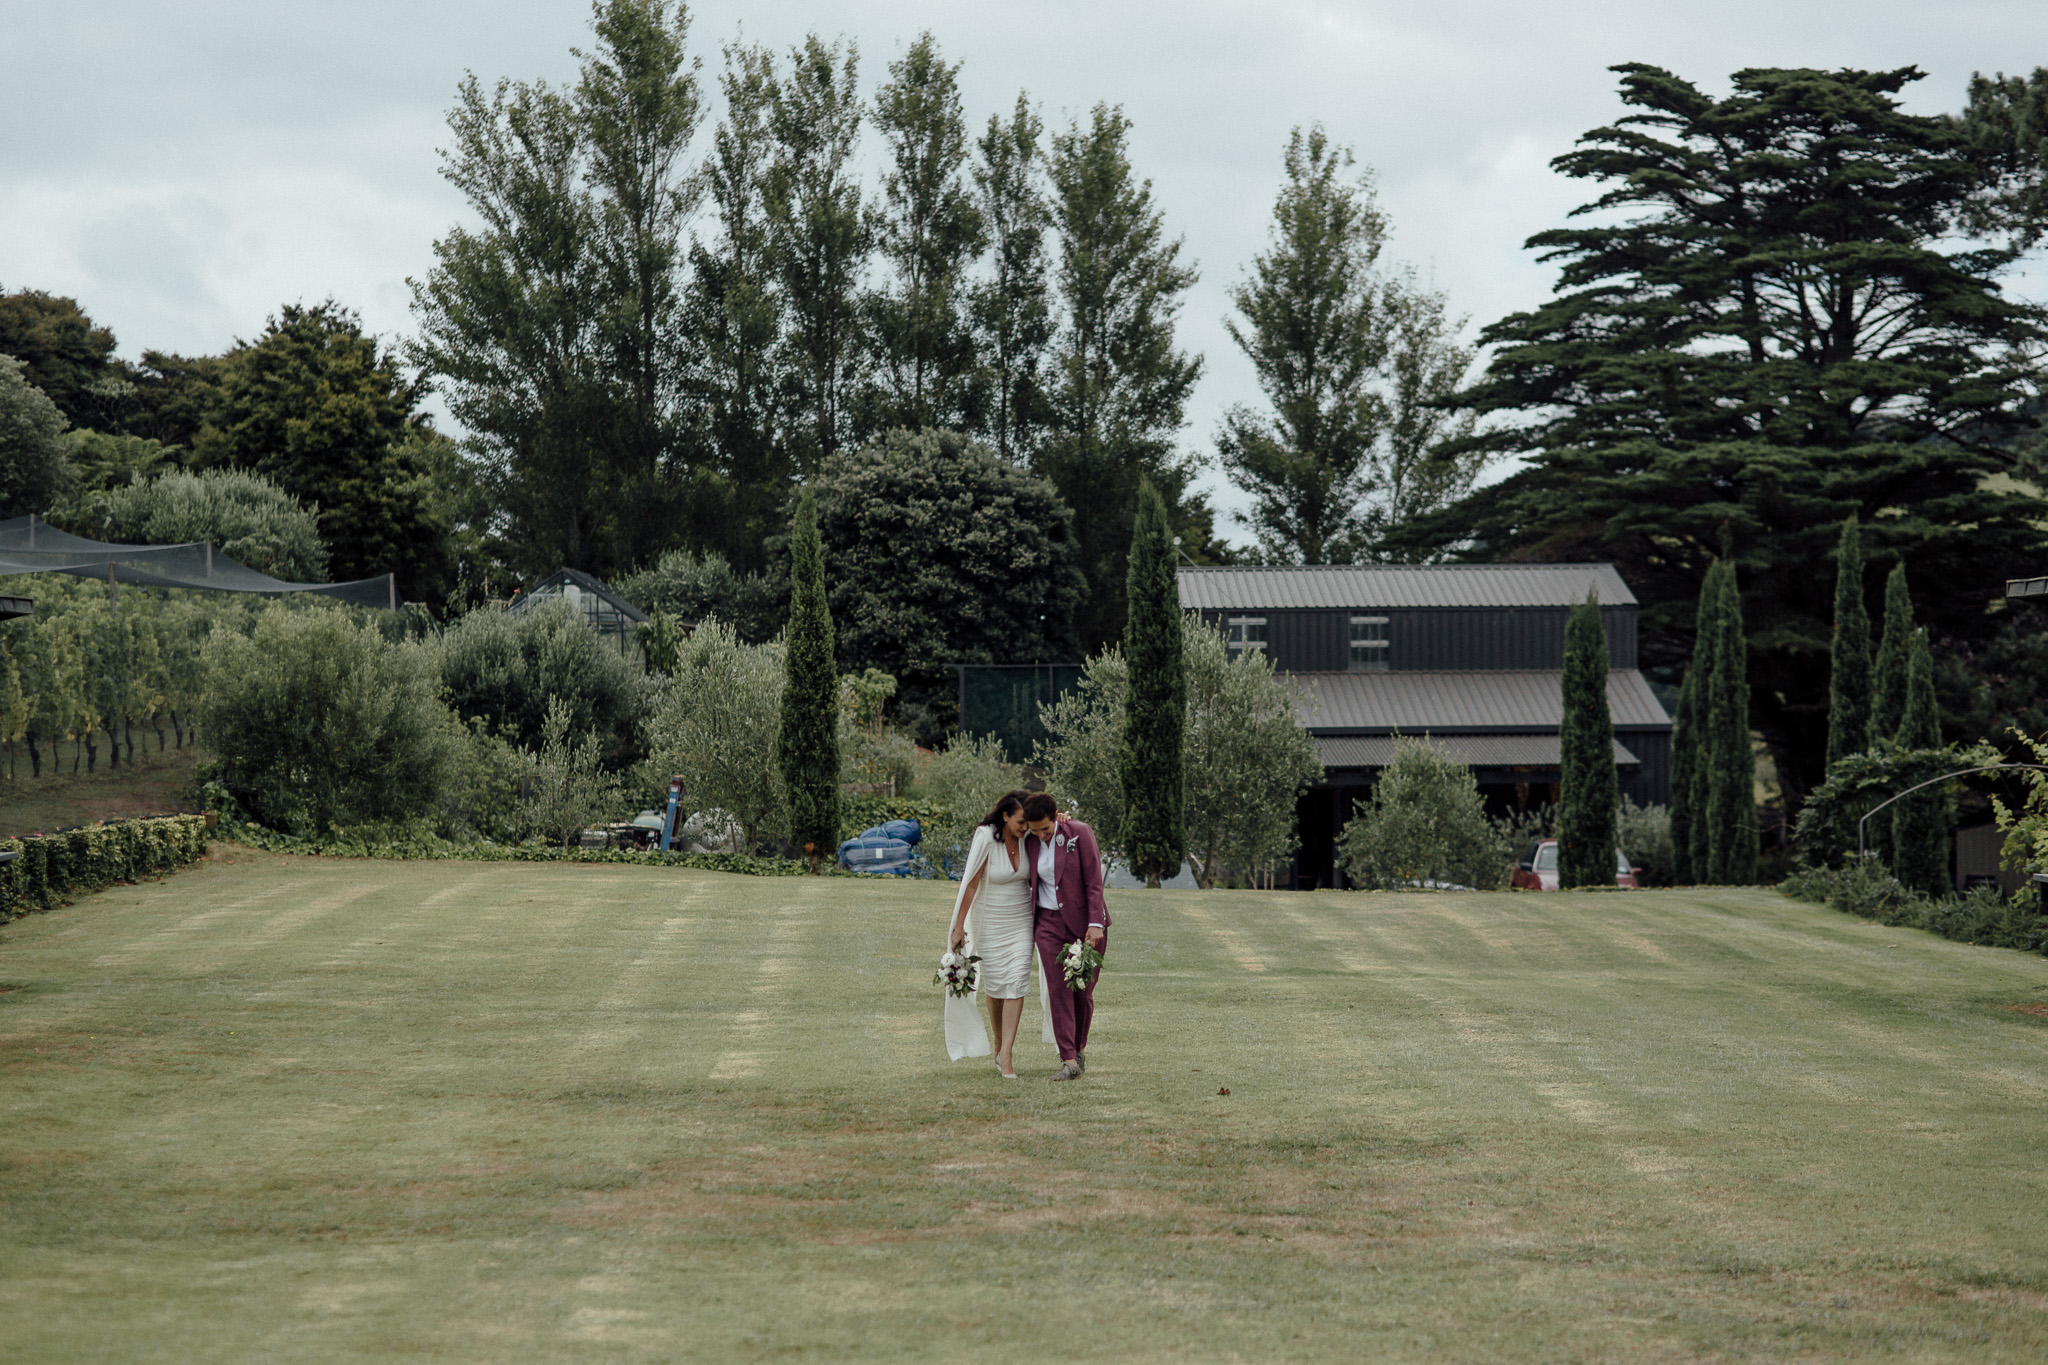 Walking up our very long grassy aisle about to be married, too excited to feel tired  Image by  Free the Bird